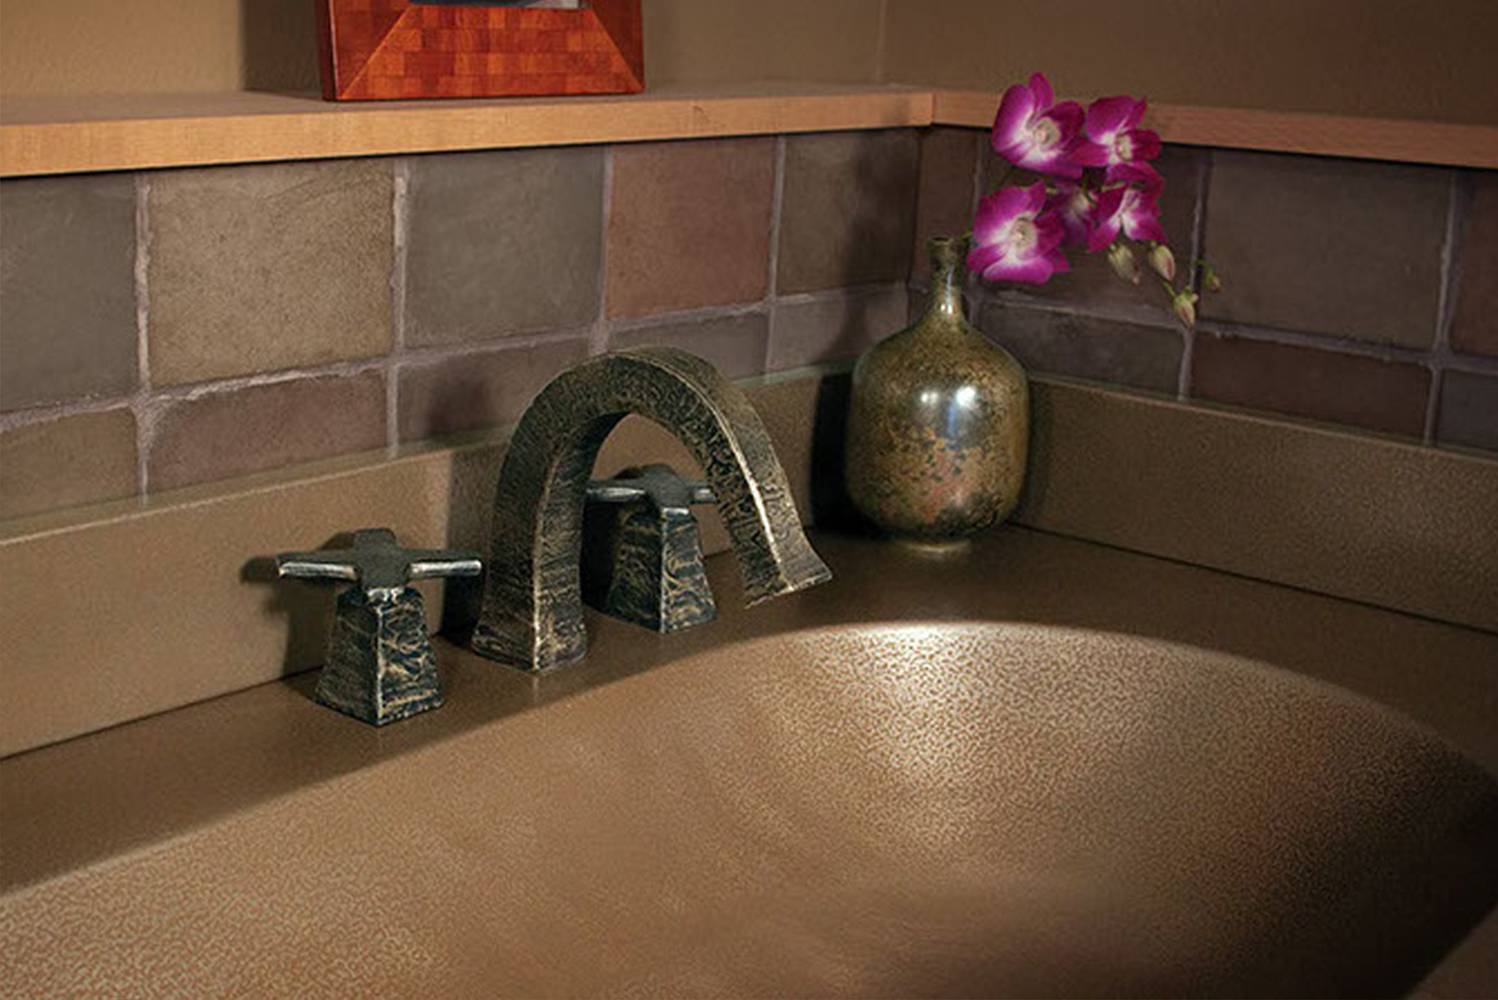 Sonoma Forge launched the CiXX collection of rustic designer faucets.